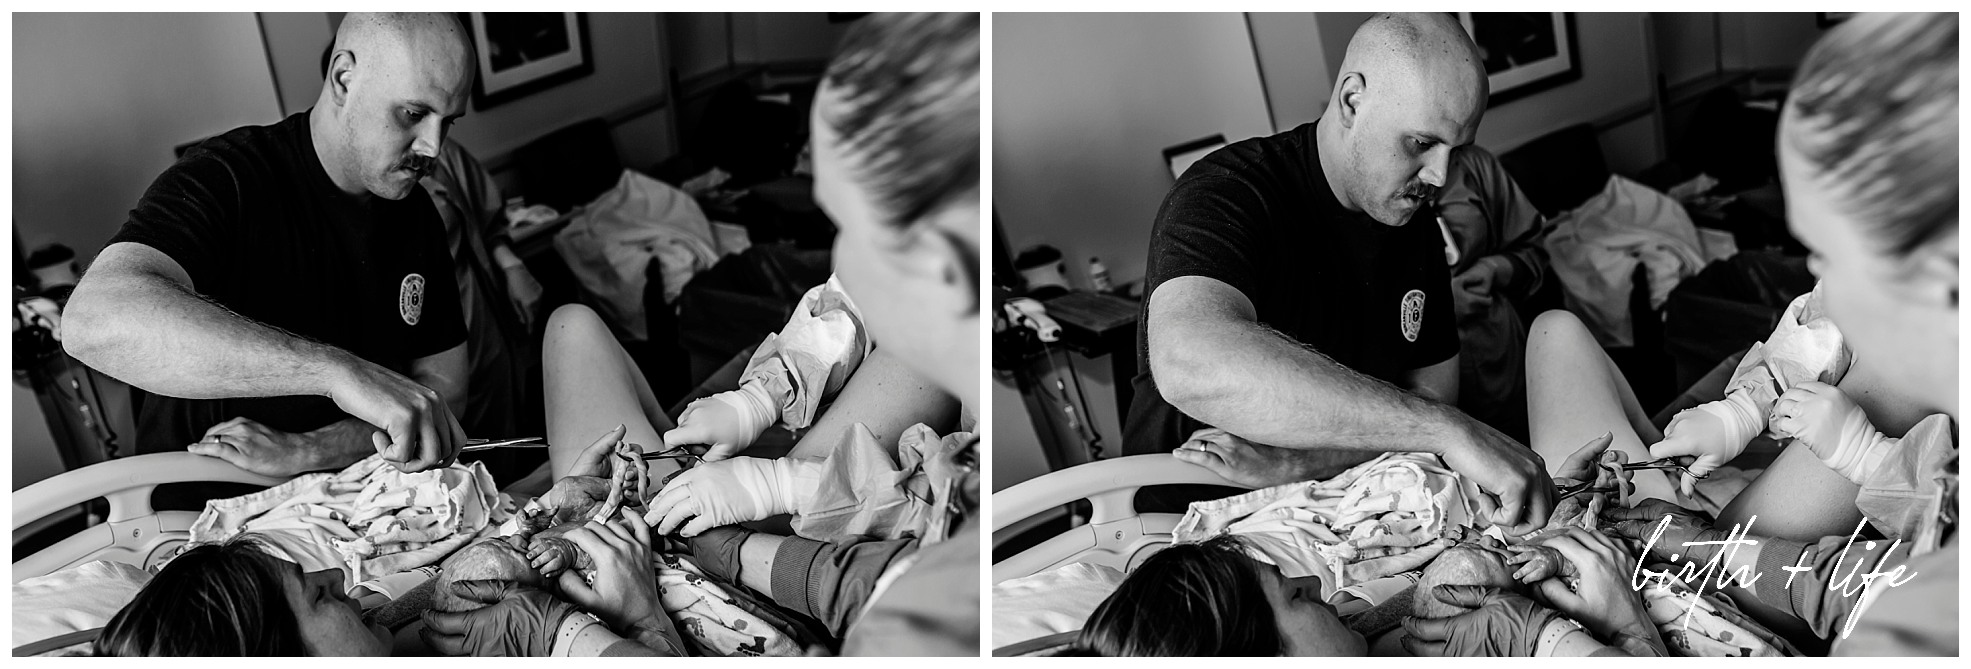 dfw-birth-and-life-photography-family-photojournalism-documentary-birth-storyacclaim-midwives-clark035.jpg